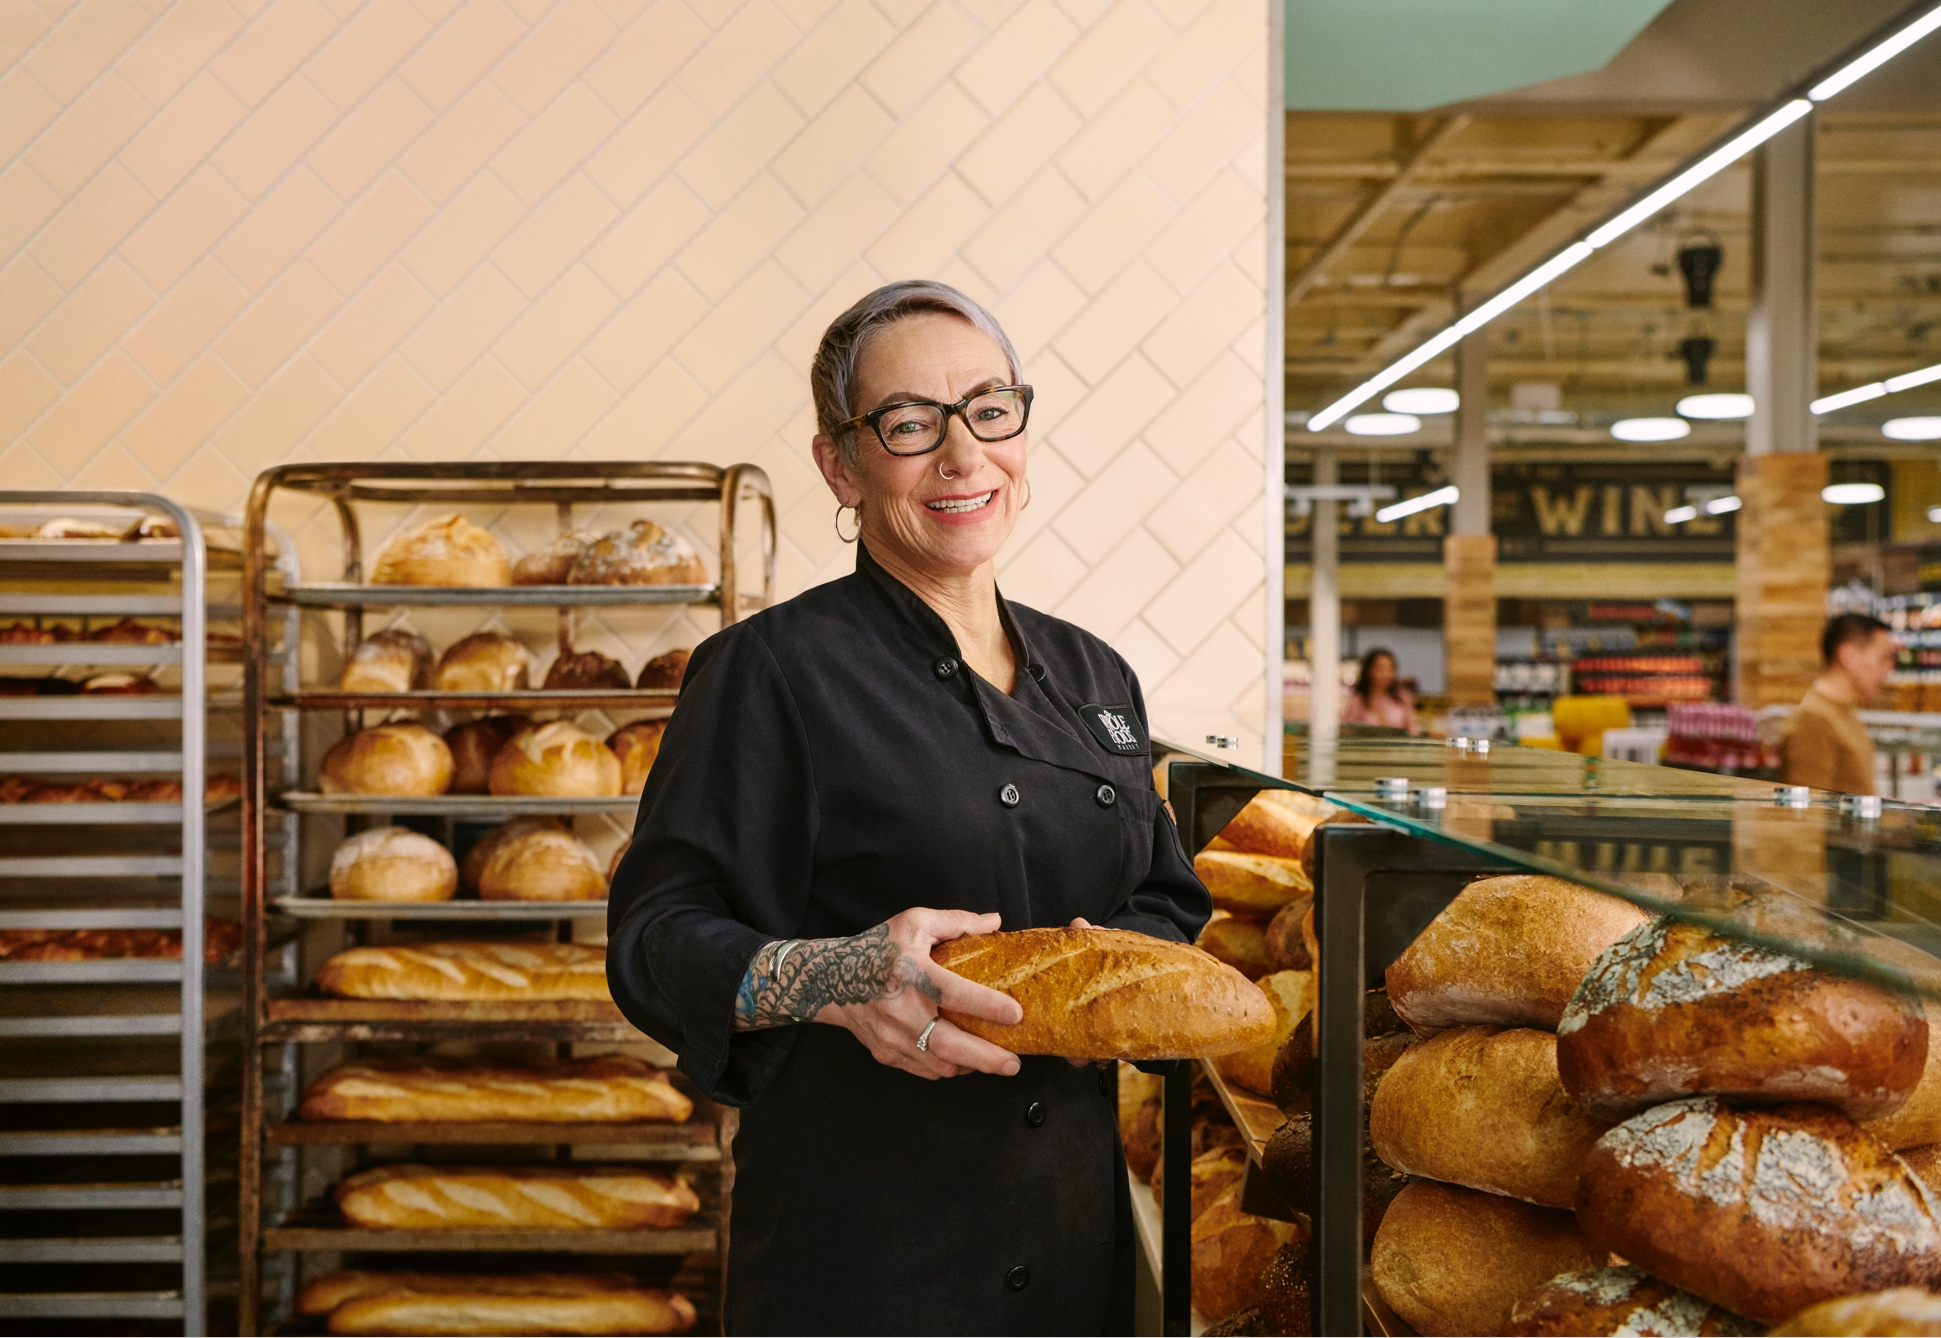 A Whole Foods employee baking bread